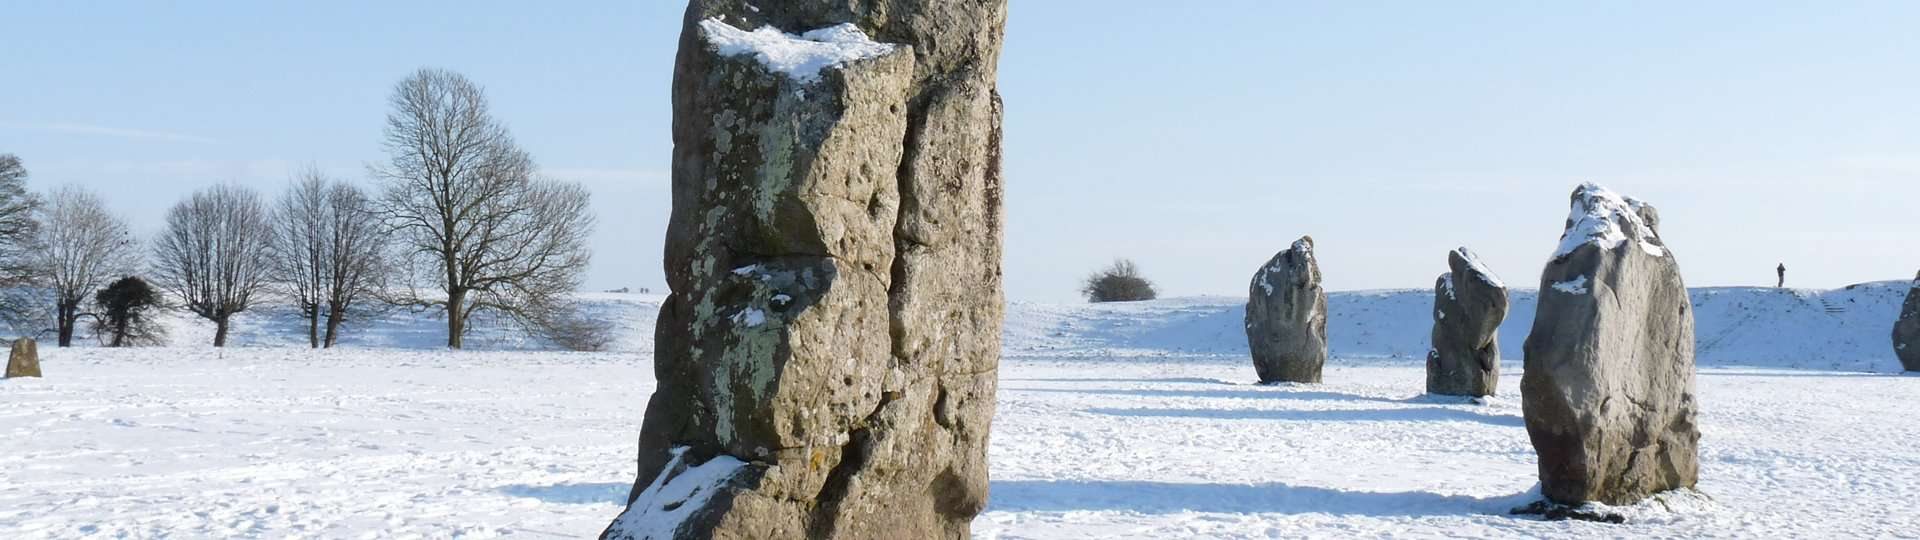 Avebury stone circle covered in snow with a bright blue sky.